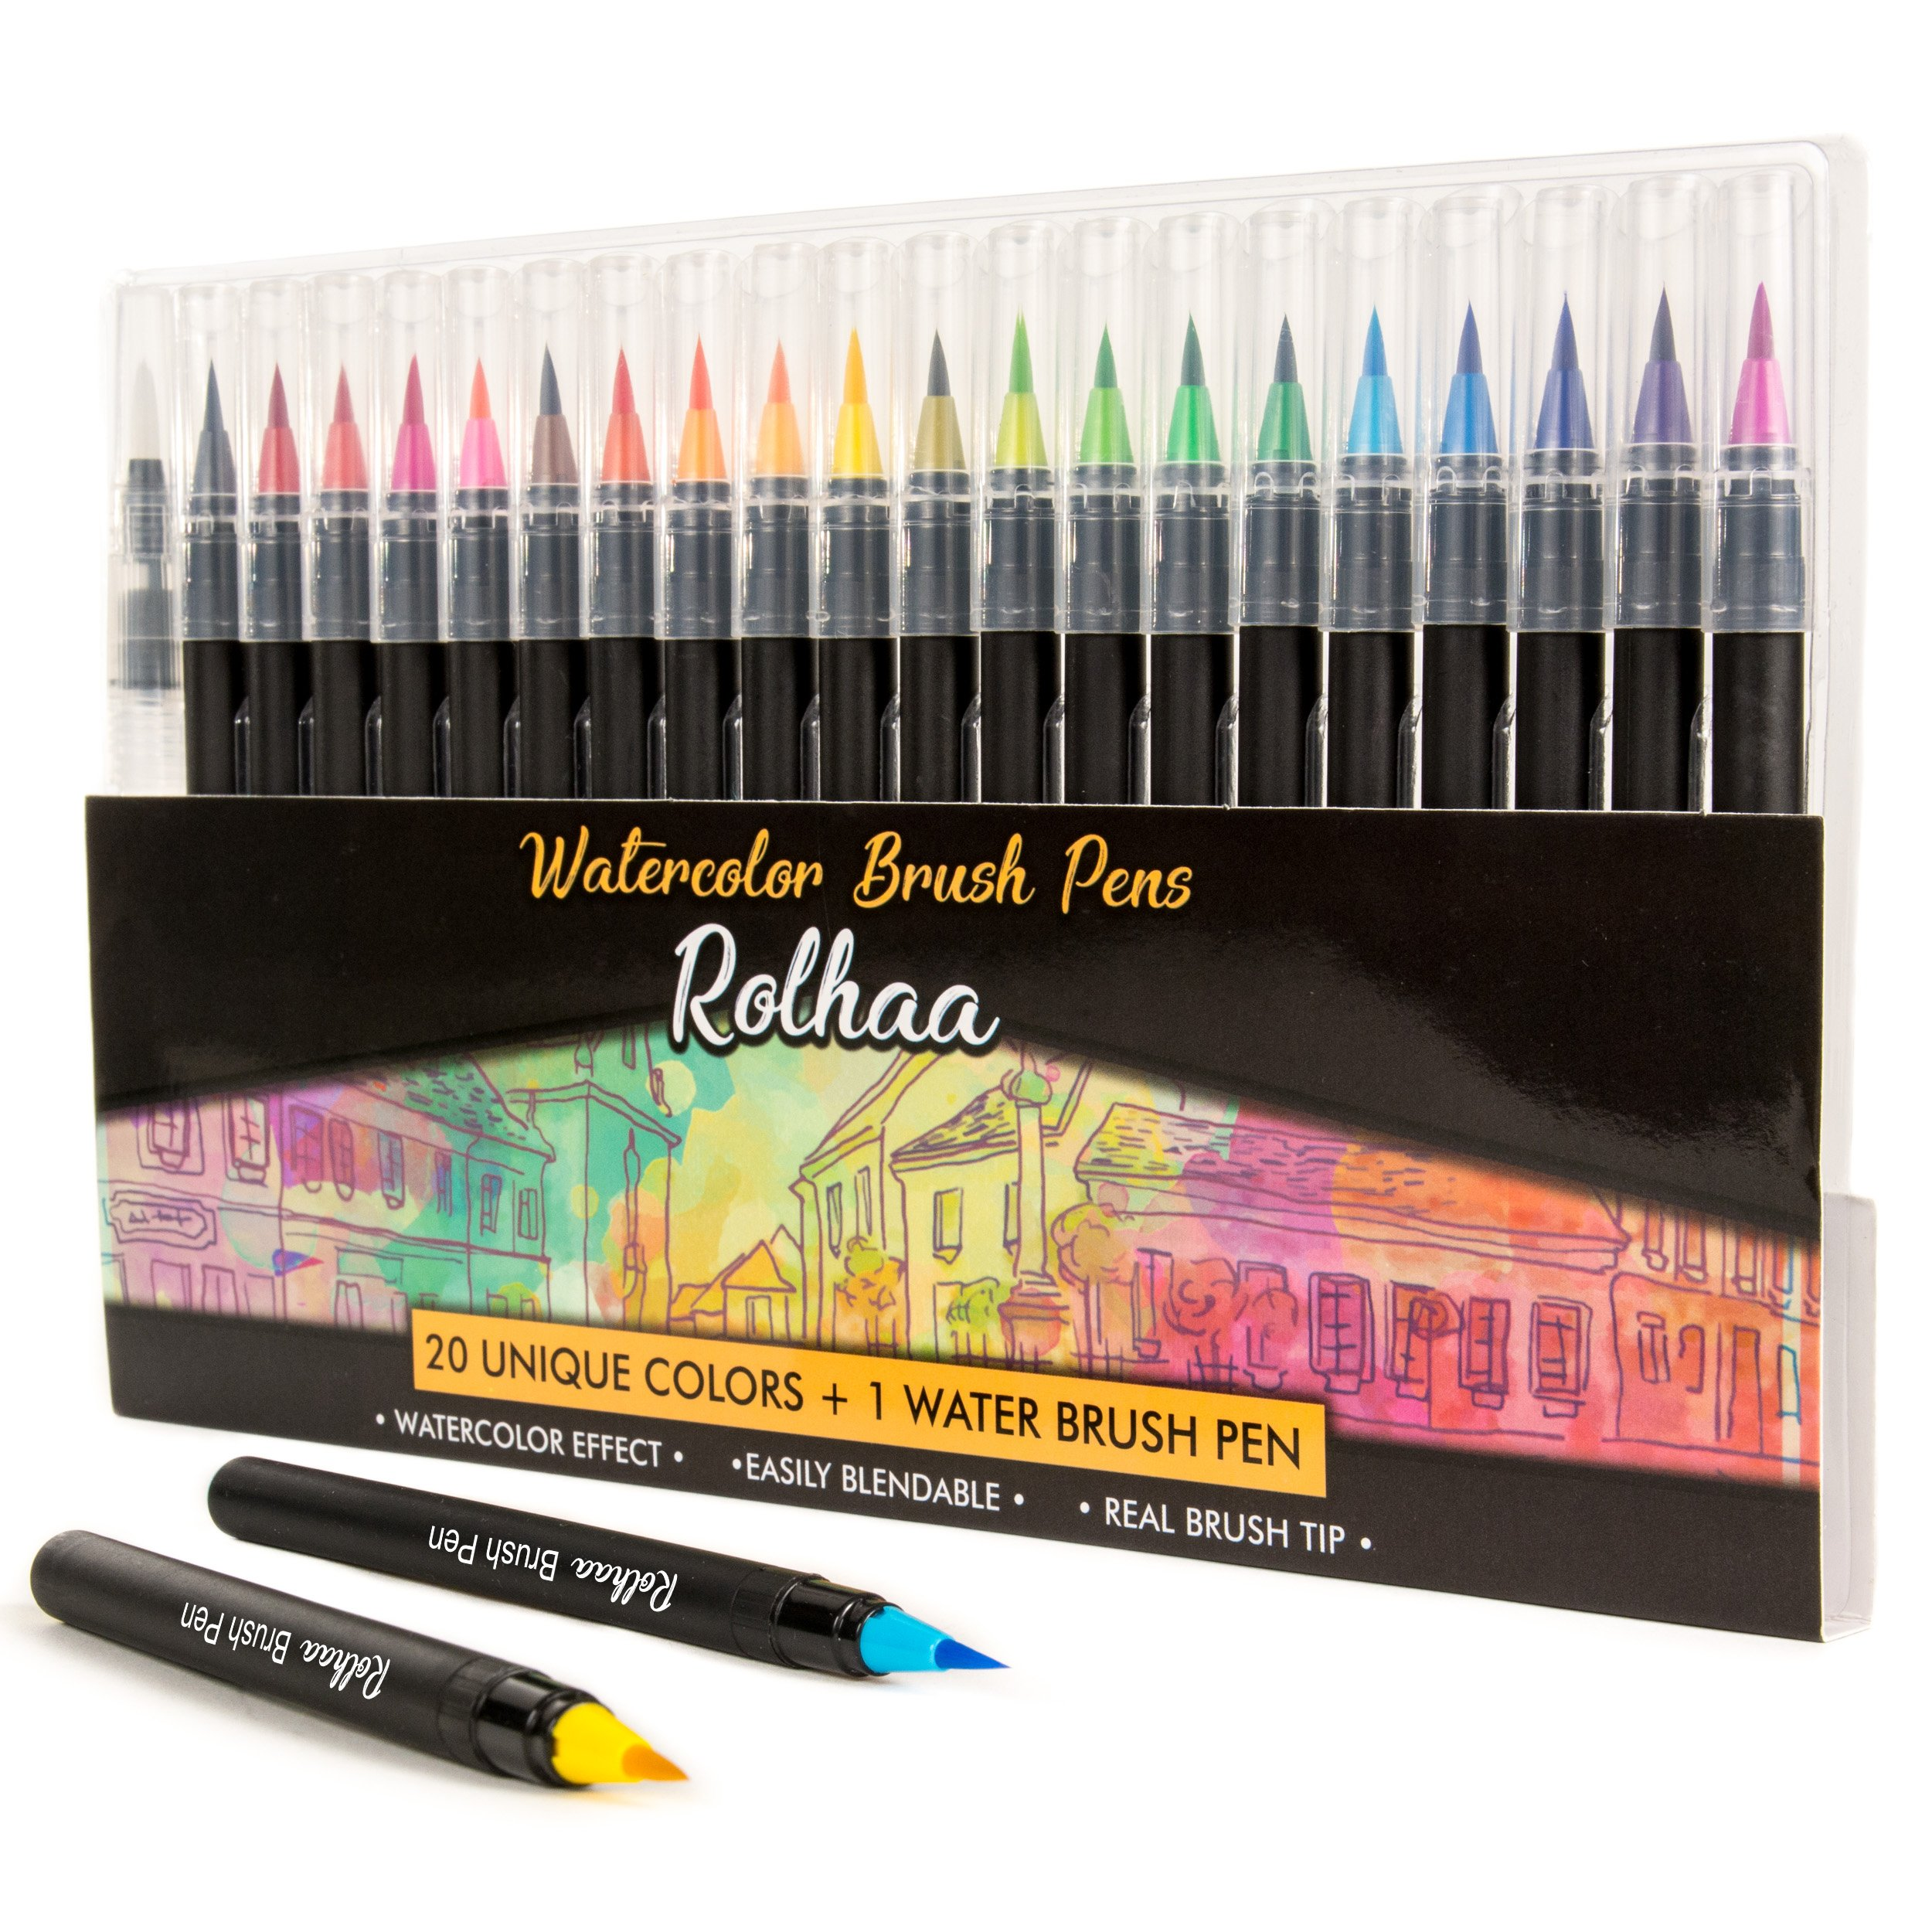 Rolhaa Watercolor Brush Pens - 20 Watercolor Markers Set + 1 Water Brush Pen | FREE Mandala Coloring E-book | Flexible Brush Tip | Paint Color Marker Set for Kids, Adult Coloring Books, Lettering by Rolhaa